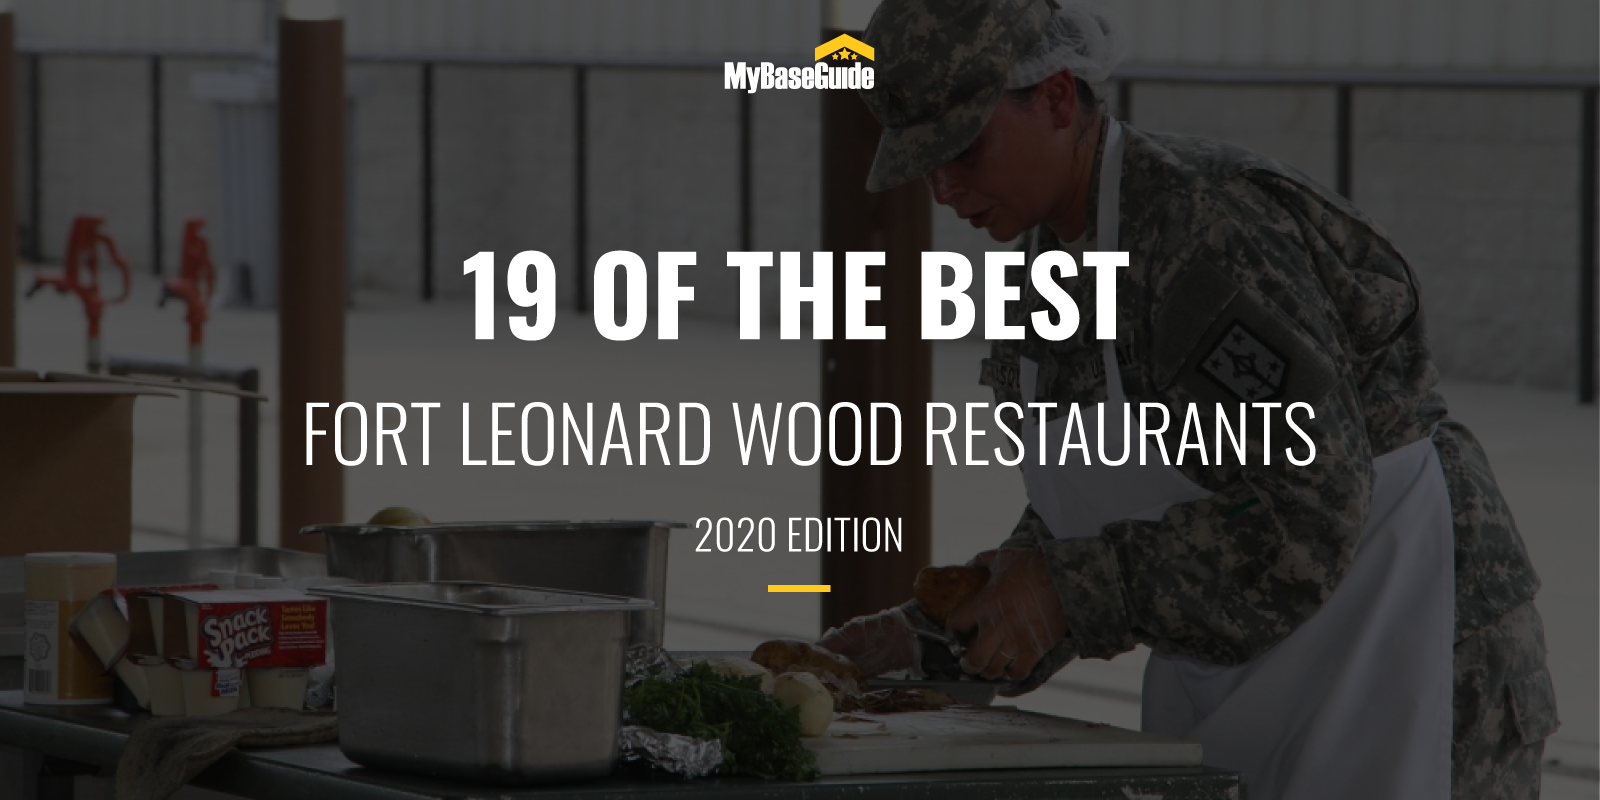 19 of the Best Fort Leonard Wood Restaurants